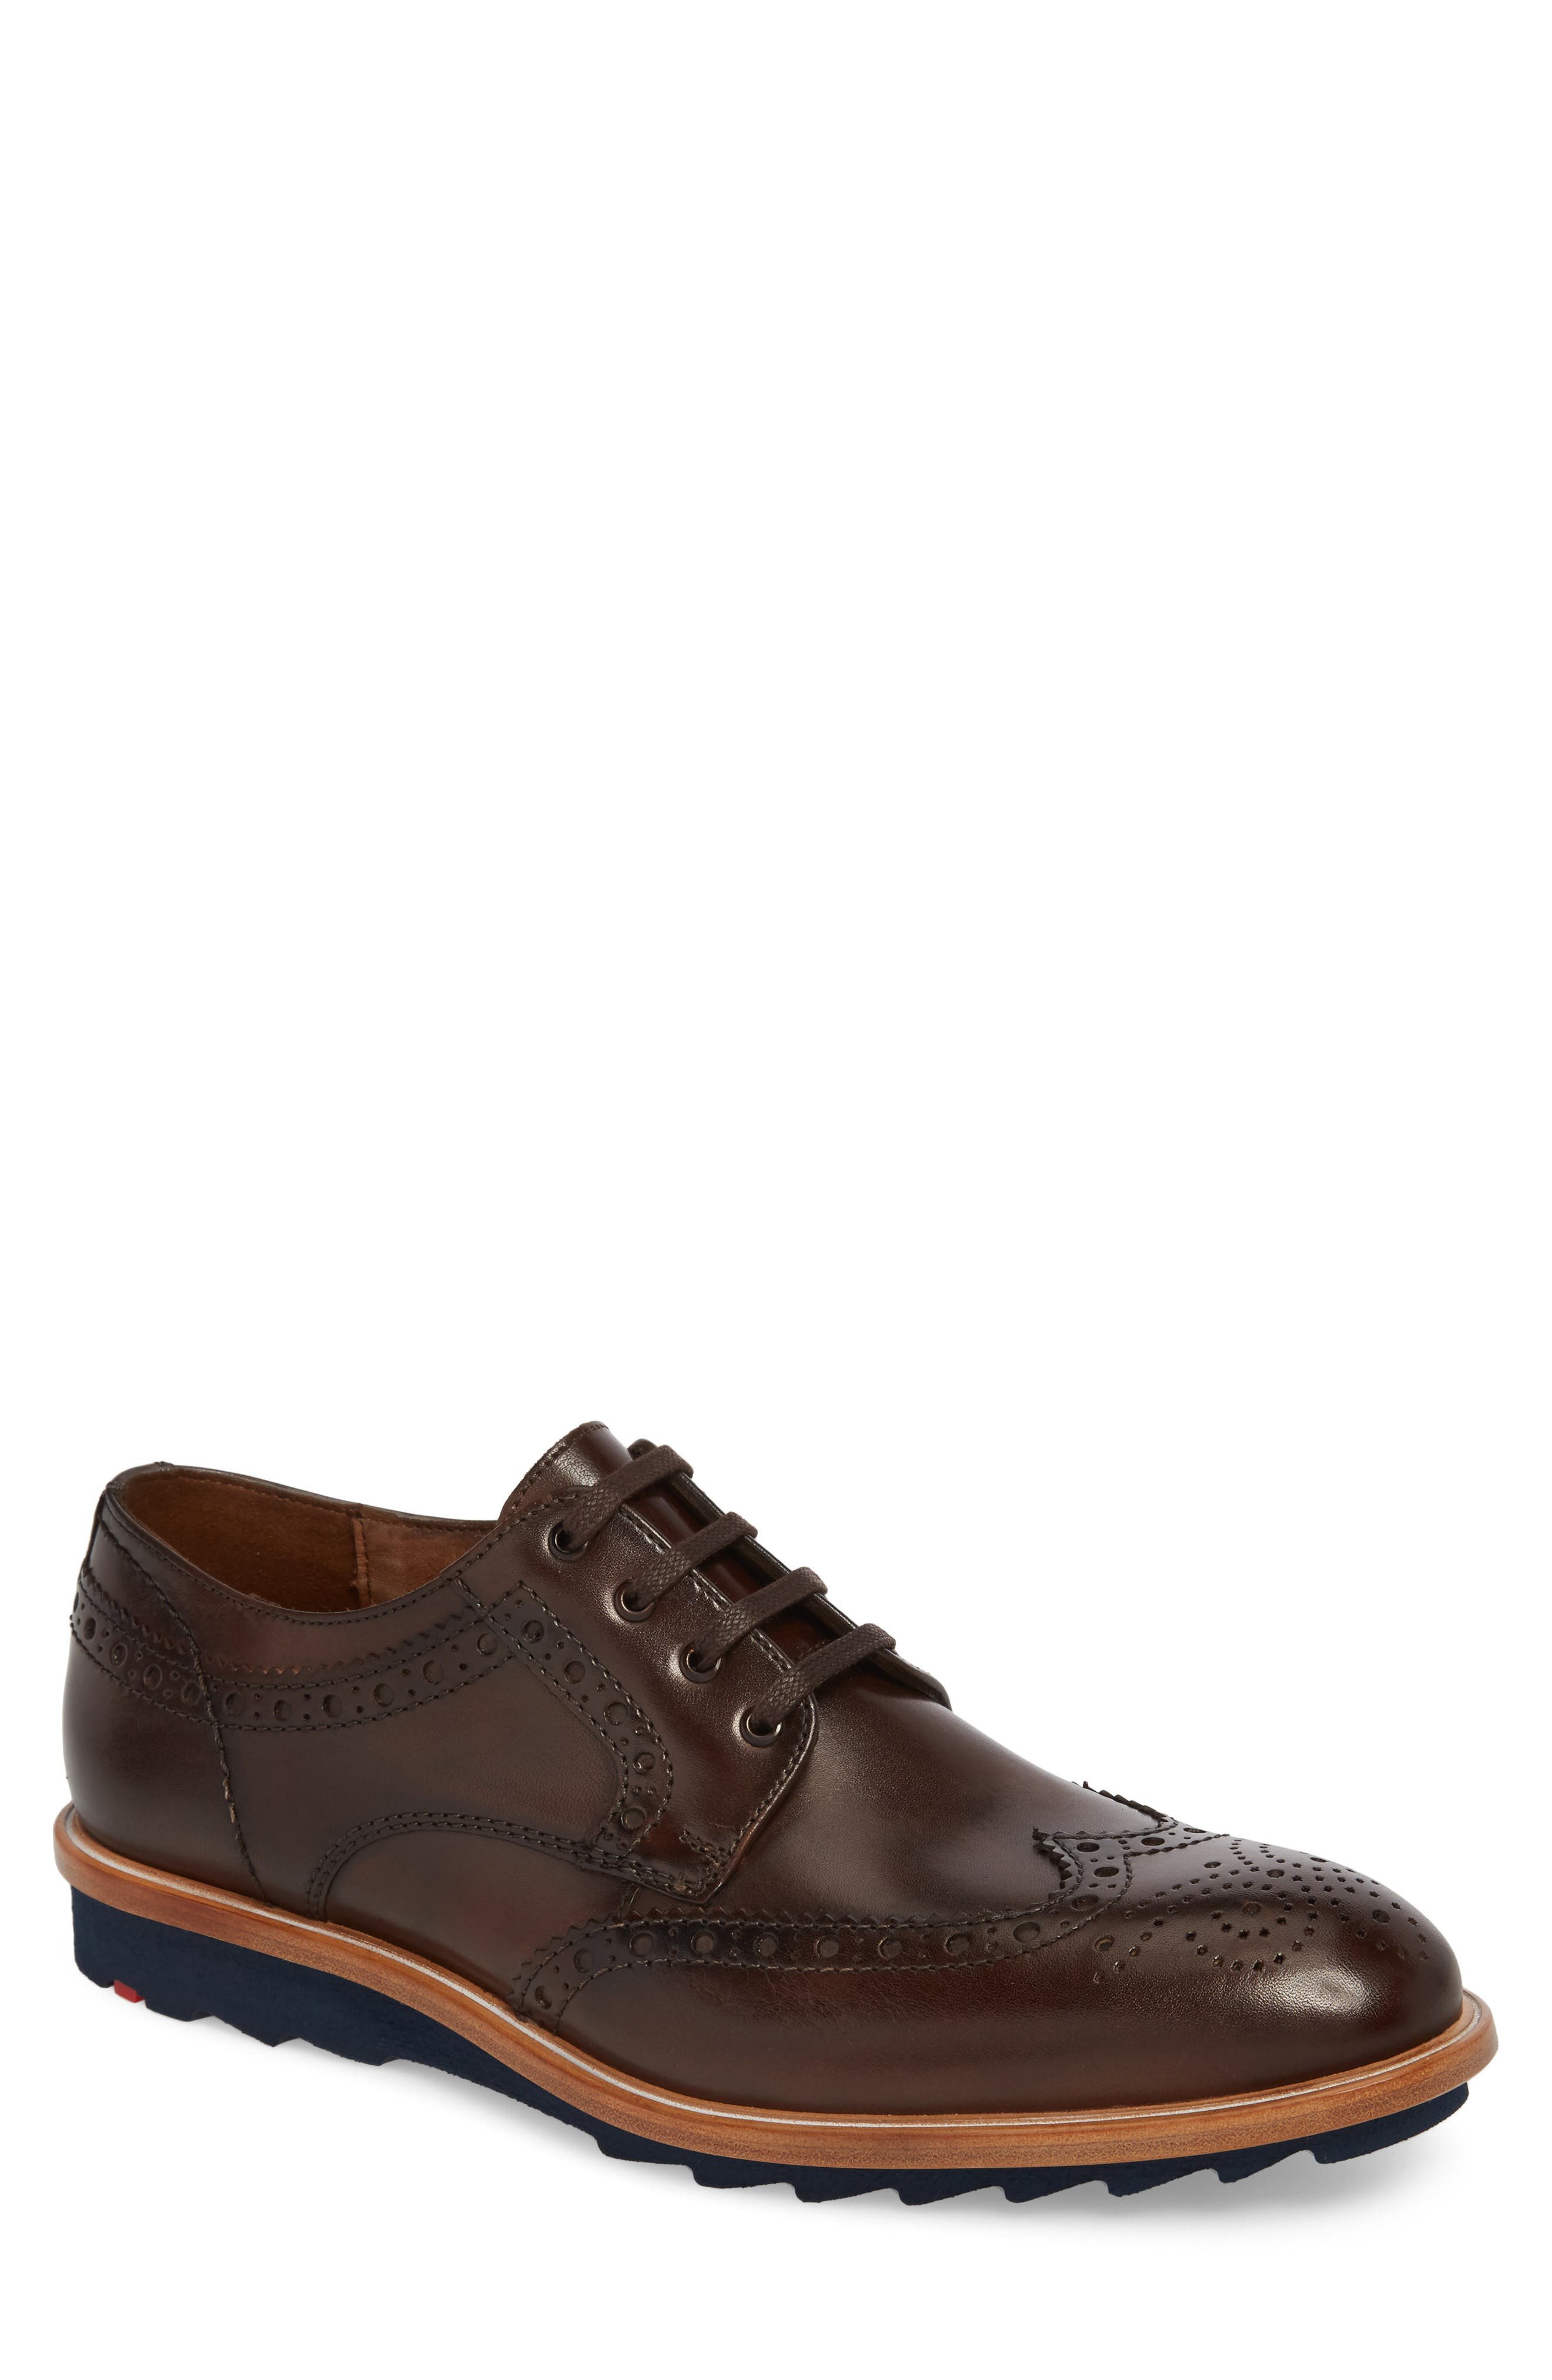 Fairbanks Wingtip,                         Main,                         color, BROWN LEATHER